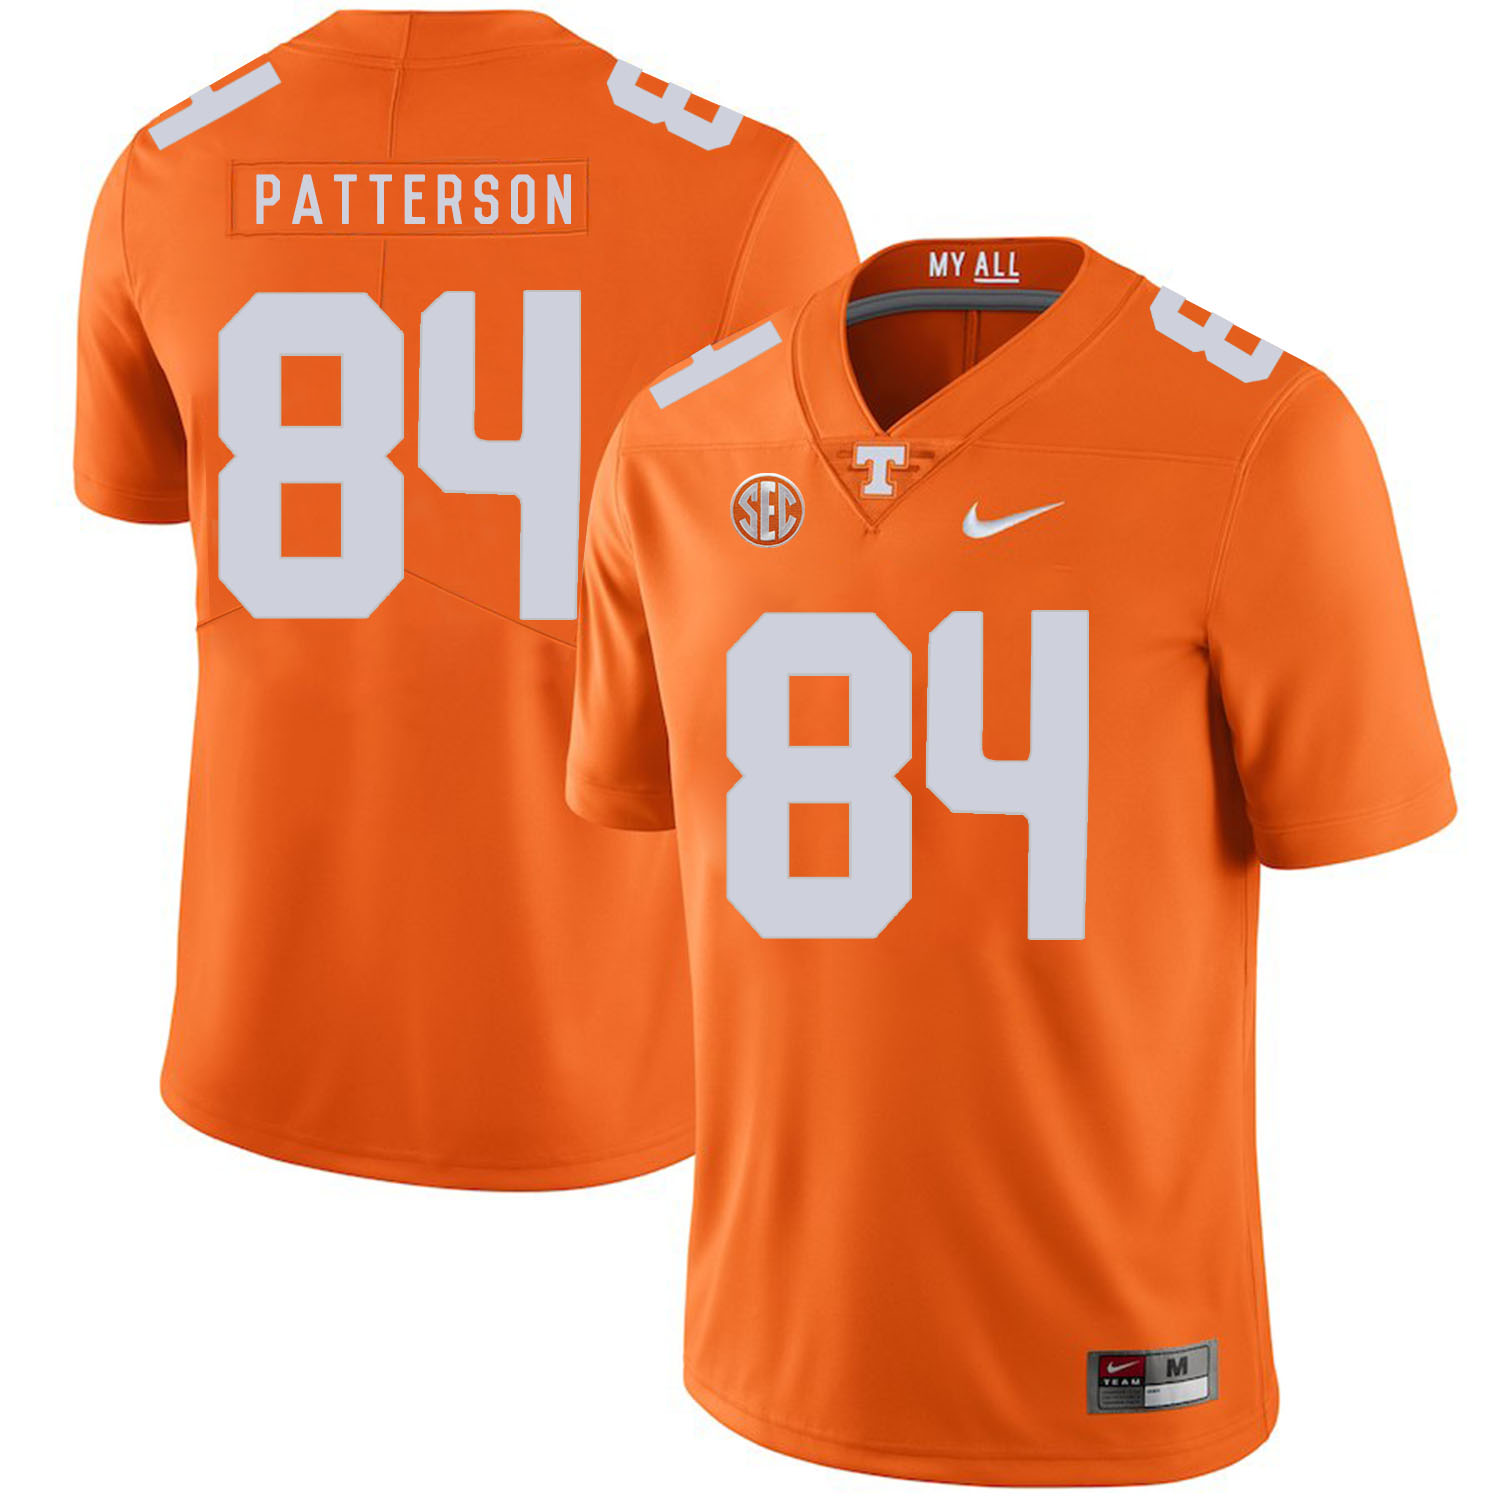 Tennessee Volunteers 84 Cordarrelle Patterson Orange Nike College Football Jersey